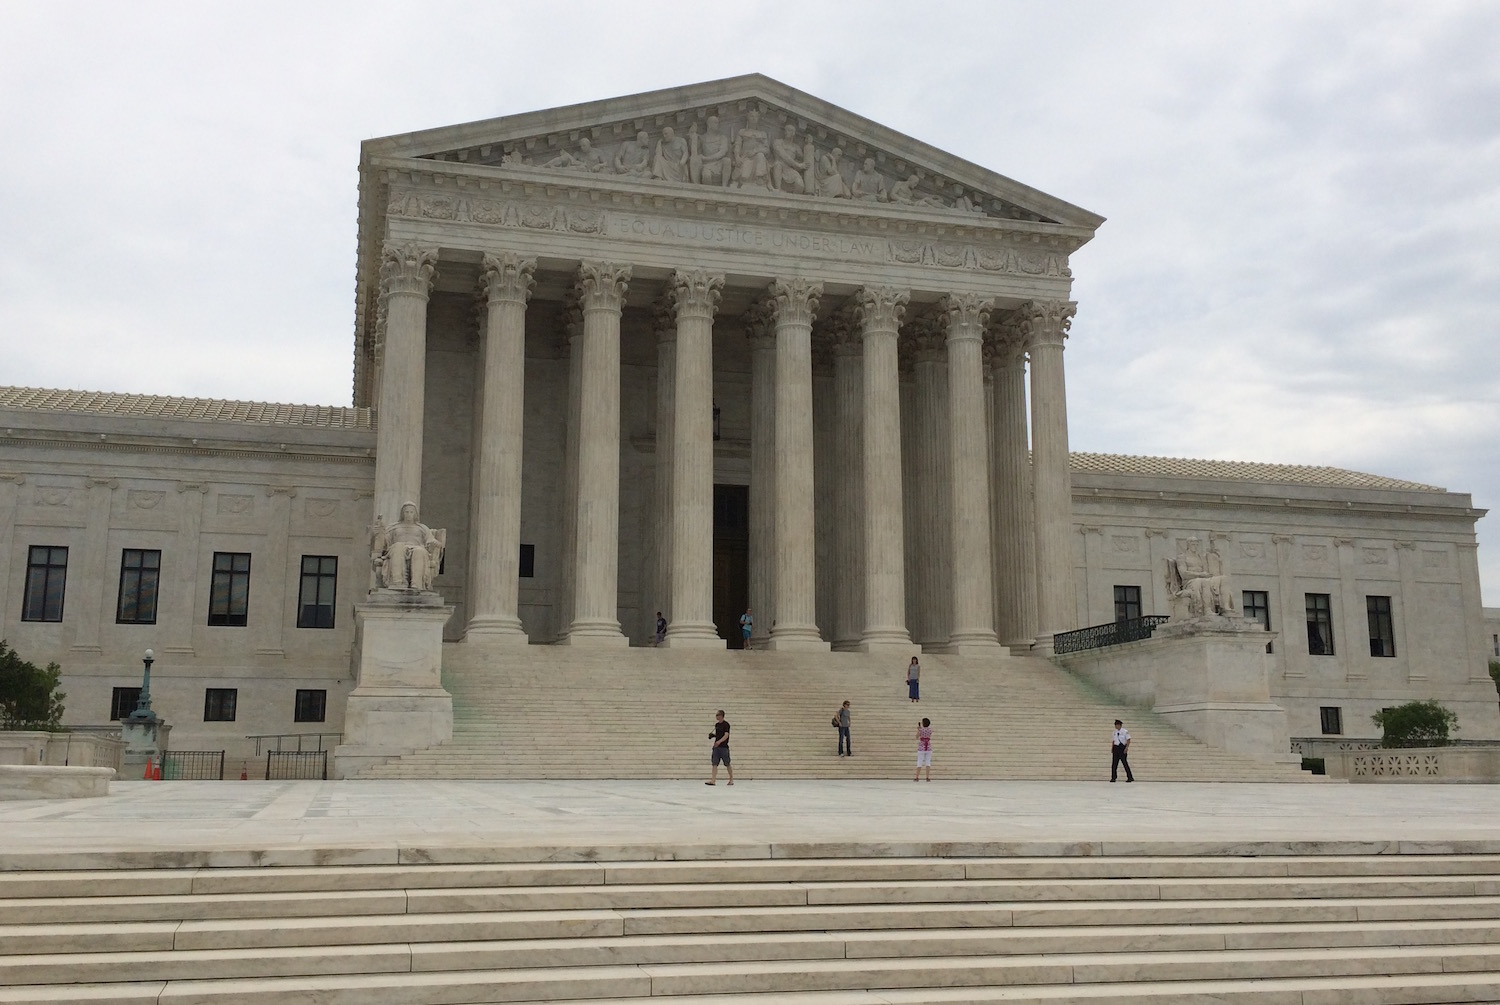 Matthew Fletcher: Takeaways from Supreme Court's new decision